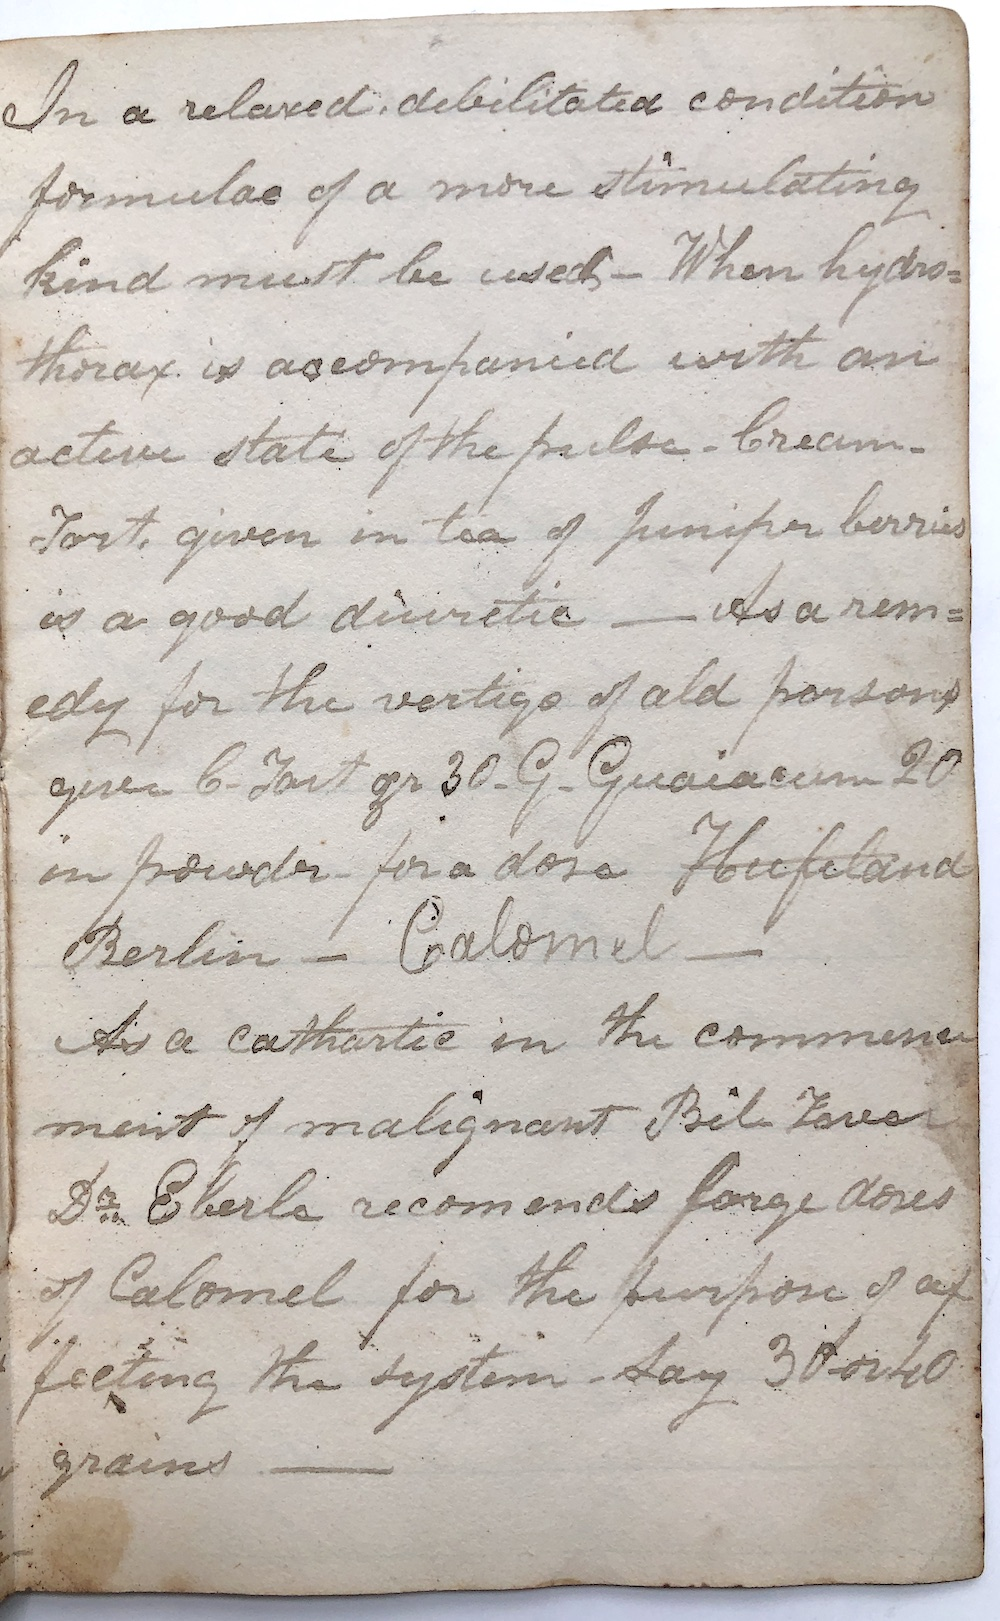 Handwritten Materia Medica Ca  1830-1840s, notes either for domestic use or  part of a medical school itinerary: Anti-emetics, Tincture of Lobelia,